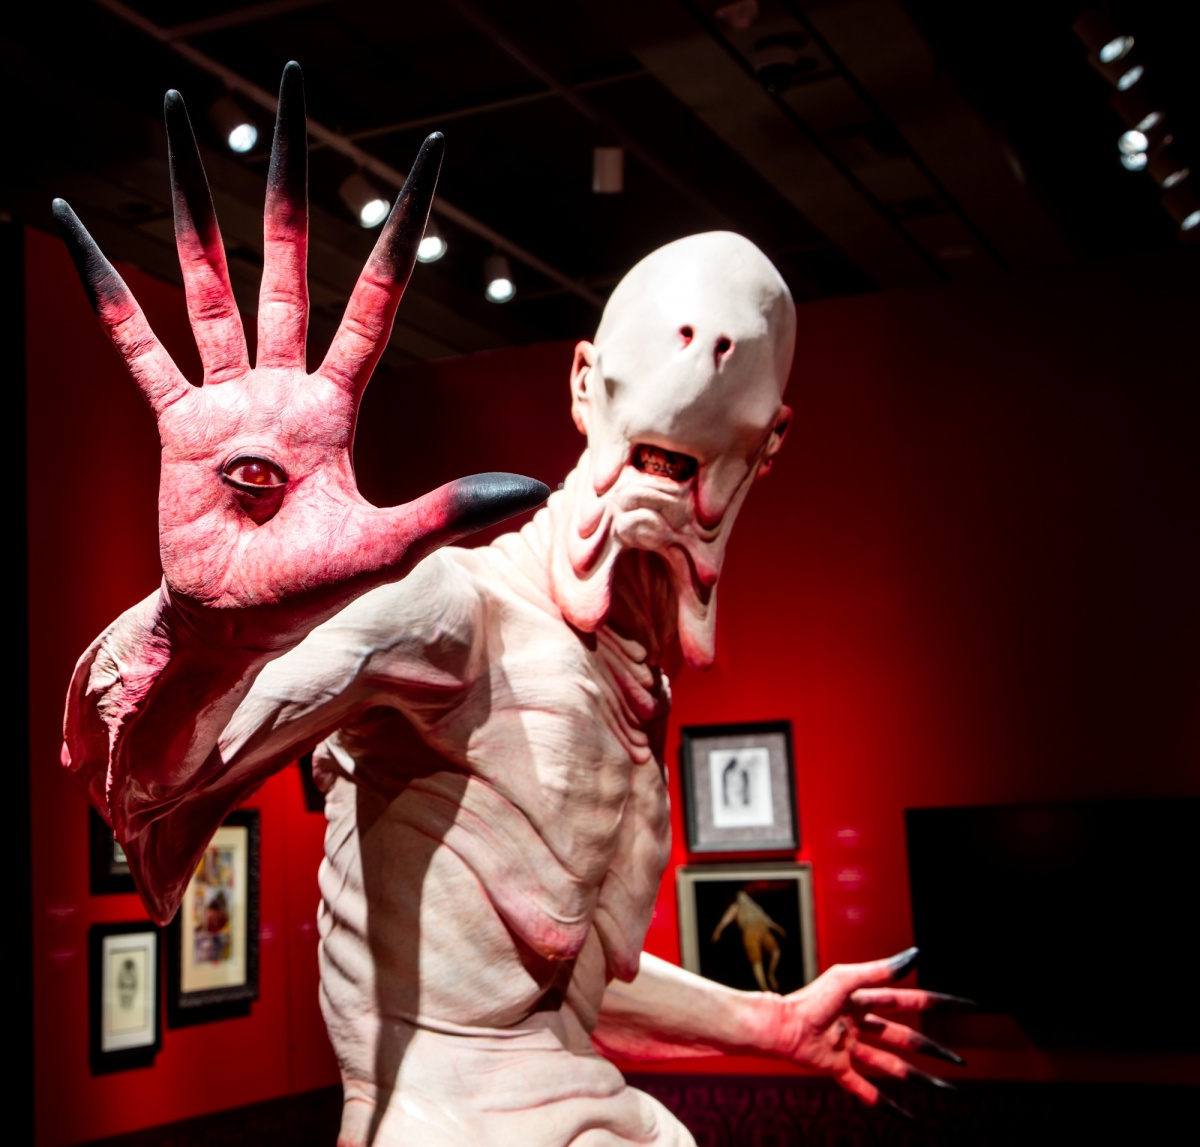 Guillermo del Toro: At Home with Monsters | Art Gallery of Ontario